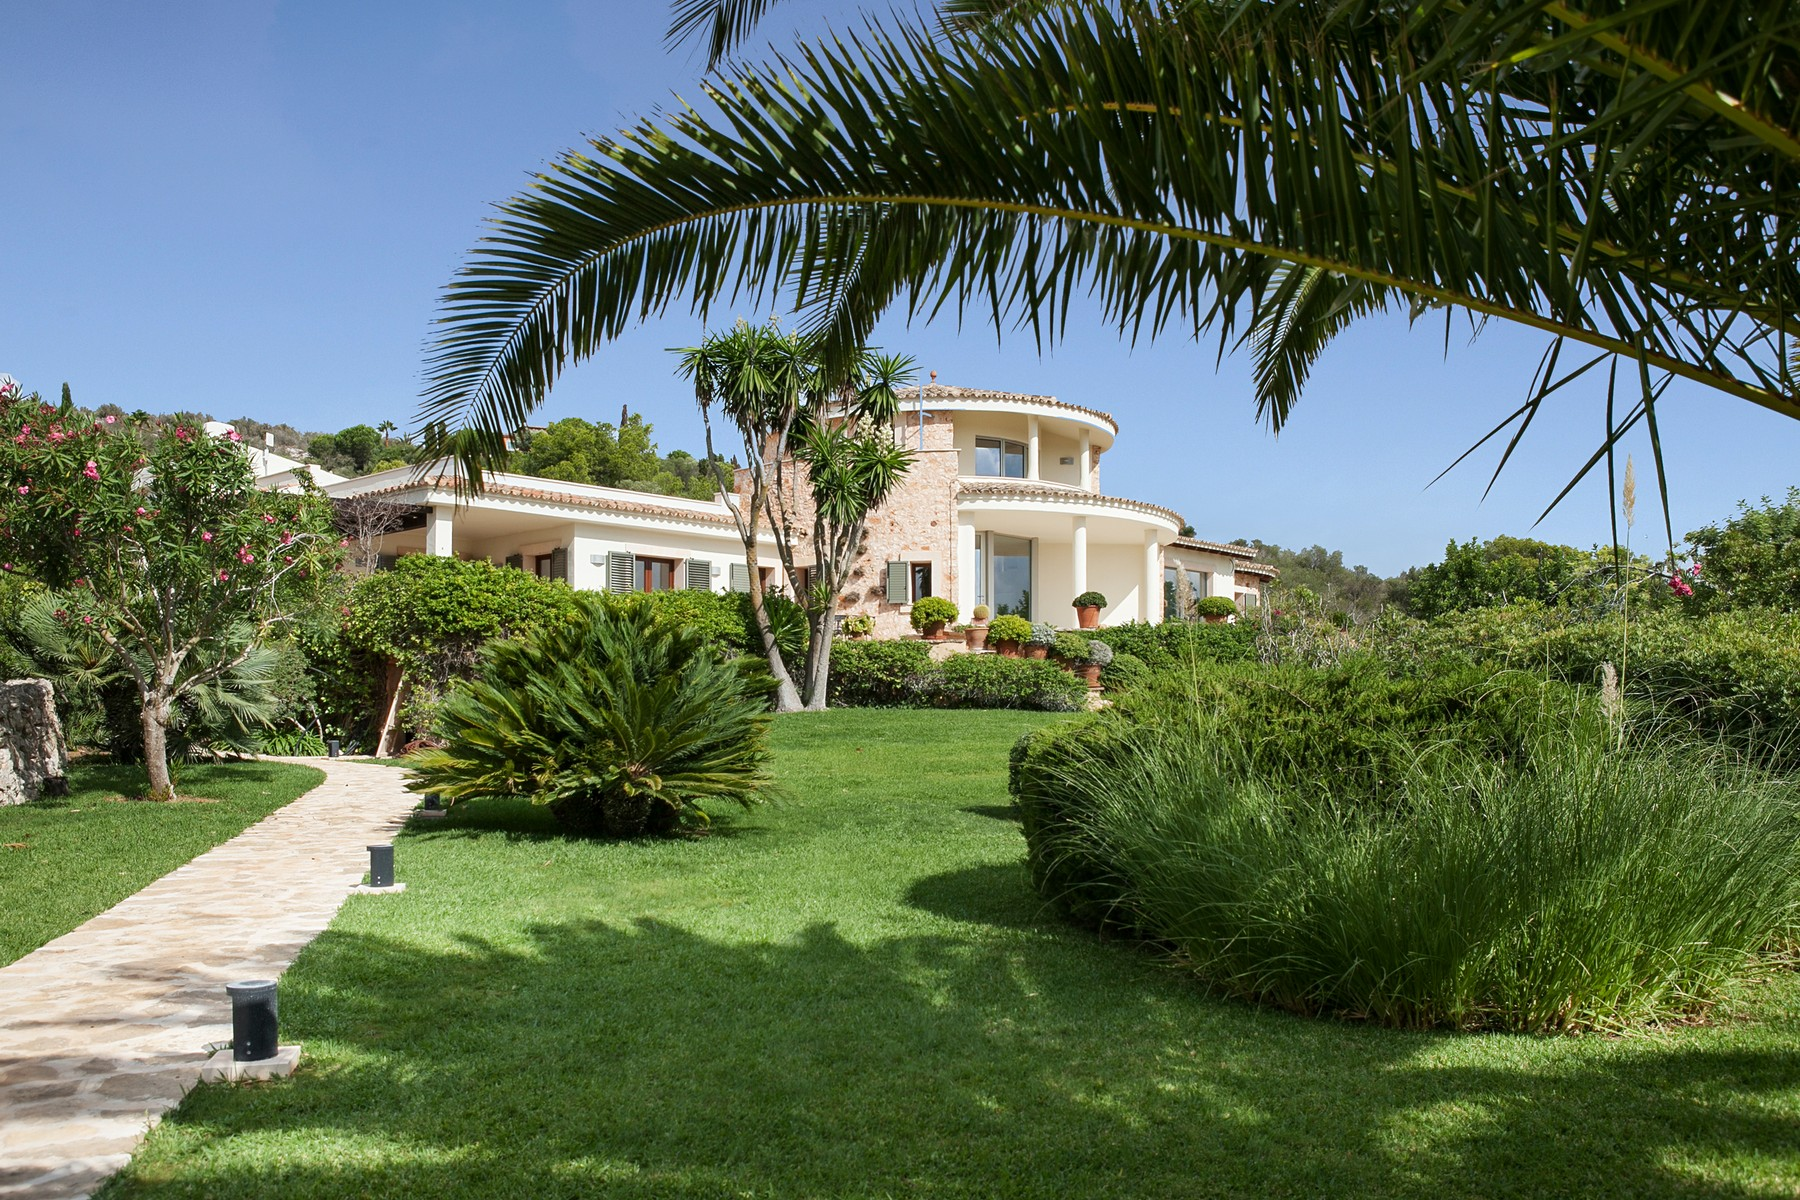 Casa Unifamiliar por un Venta en Country Estate with sea views near Porto Colom es caritxo Porto Colom, Mallorca, 07669 España